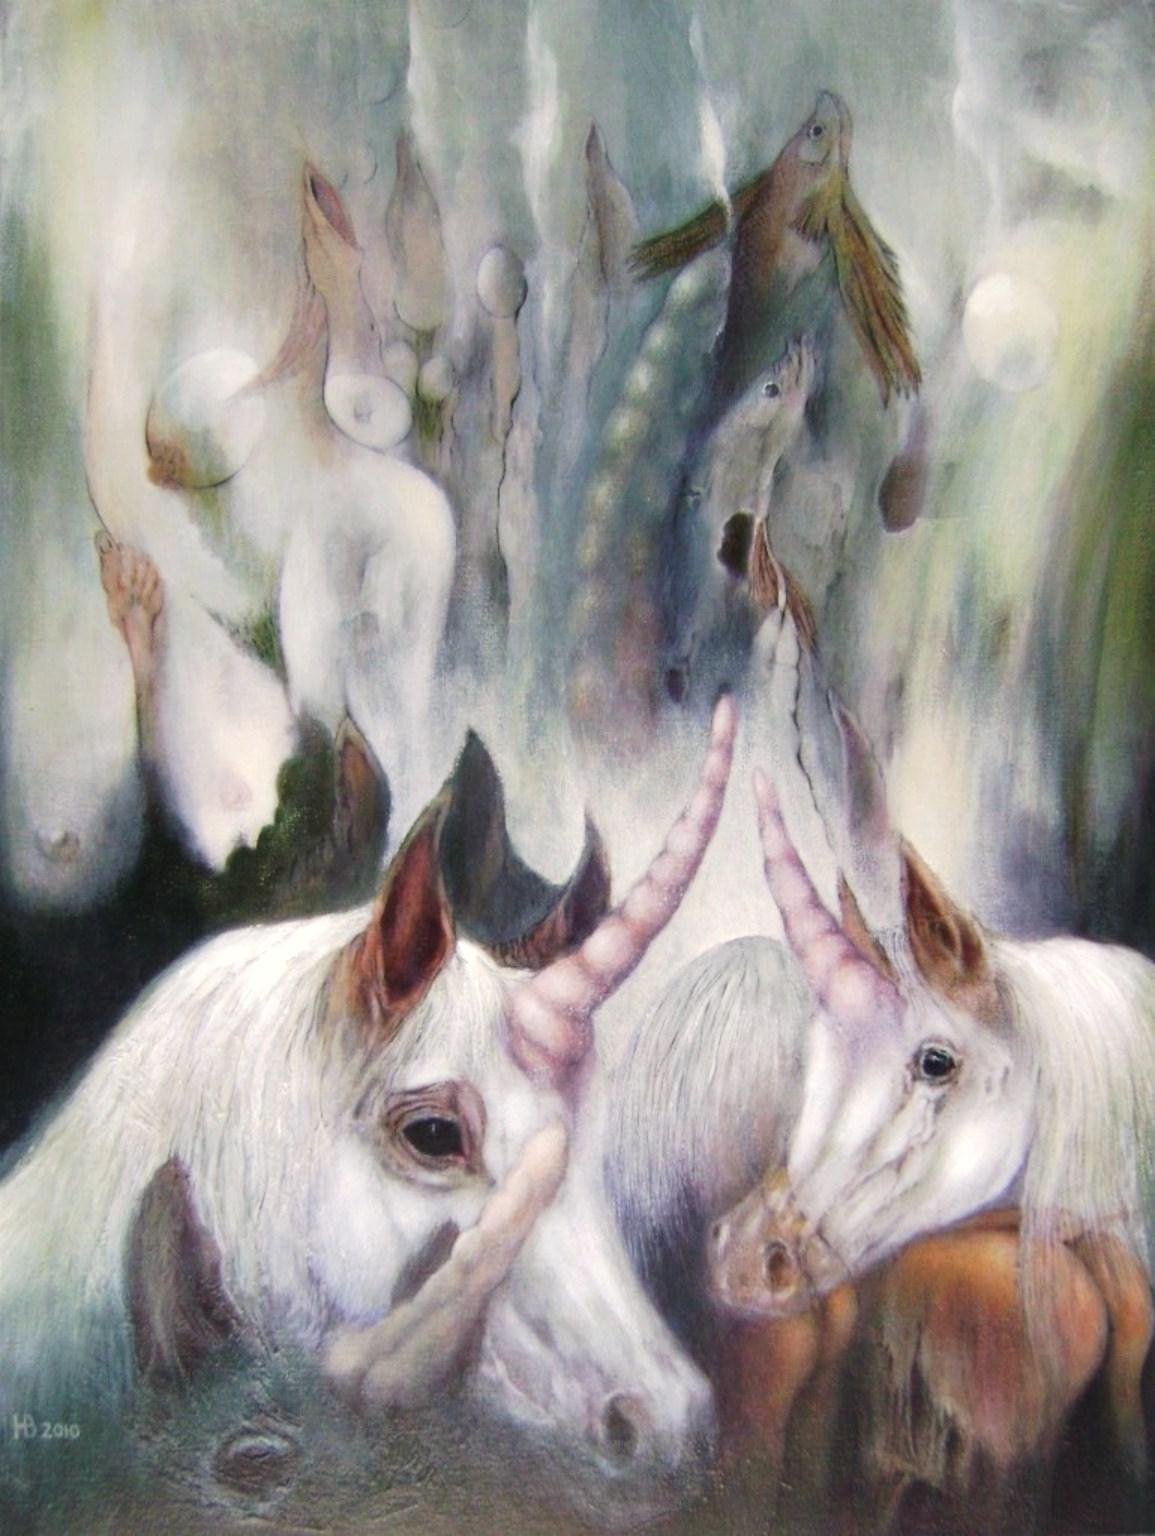 Unicorni, 80x60 cm, oil on canvas, 2010.